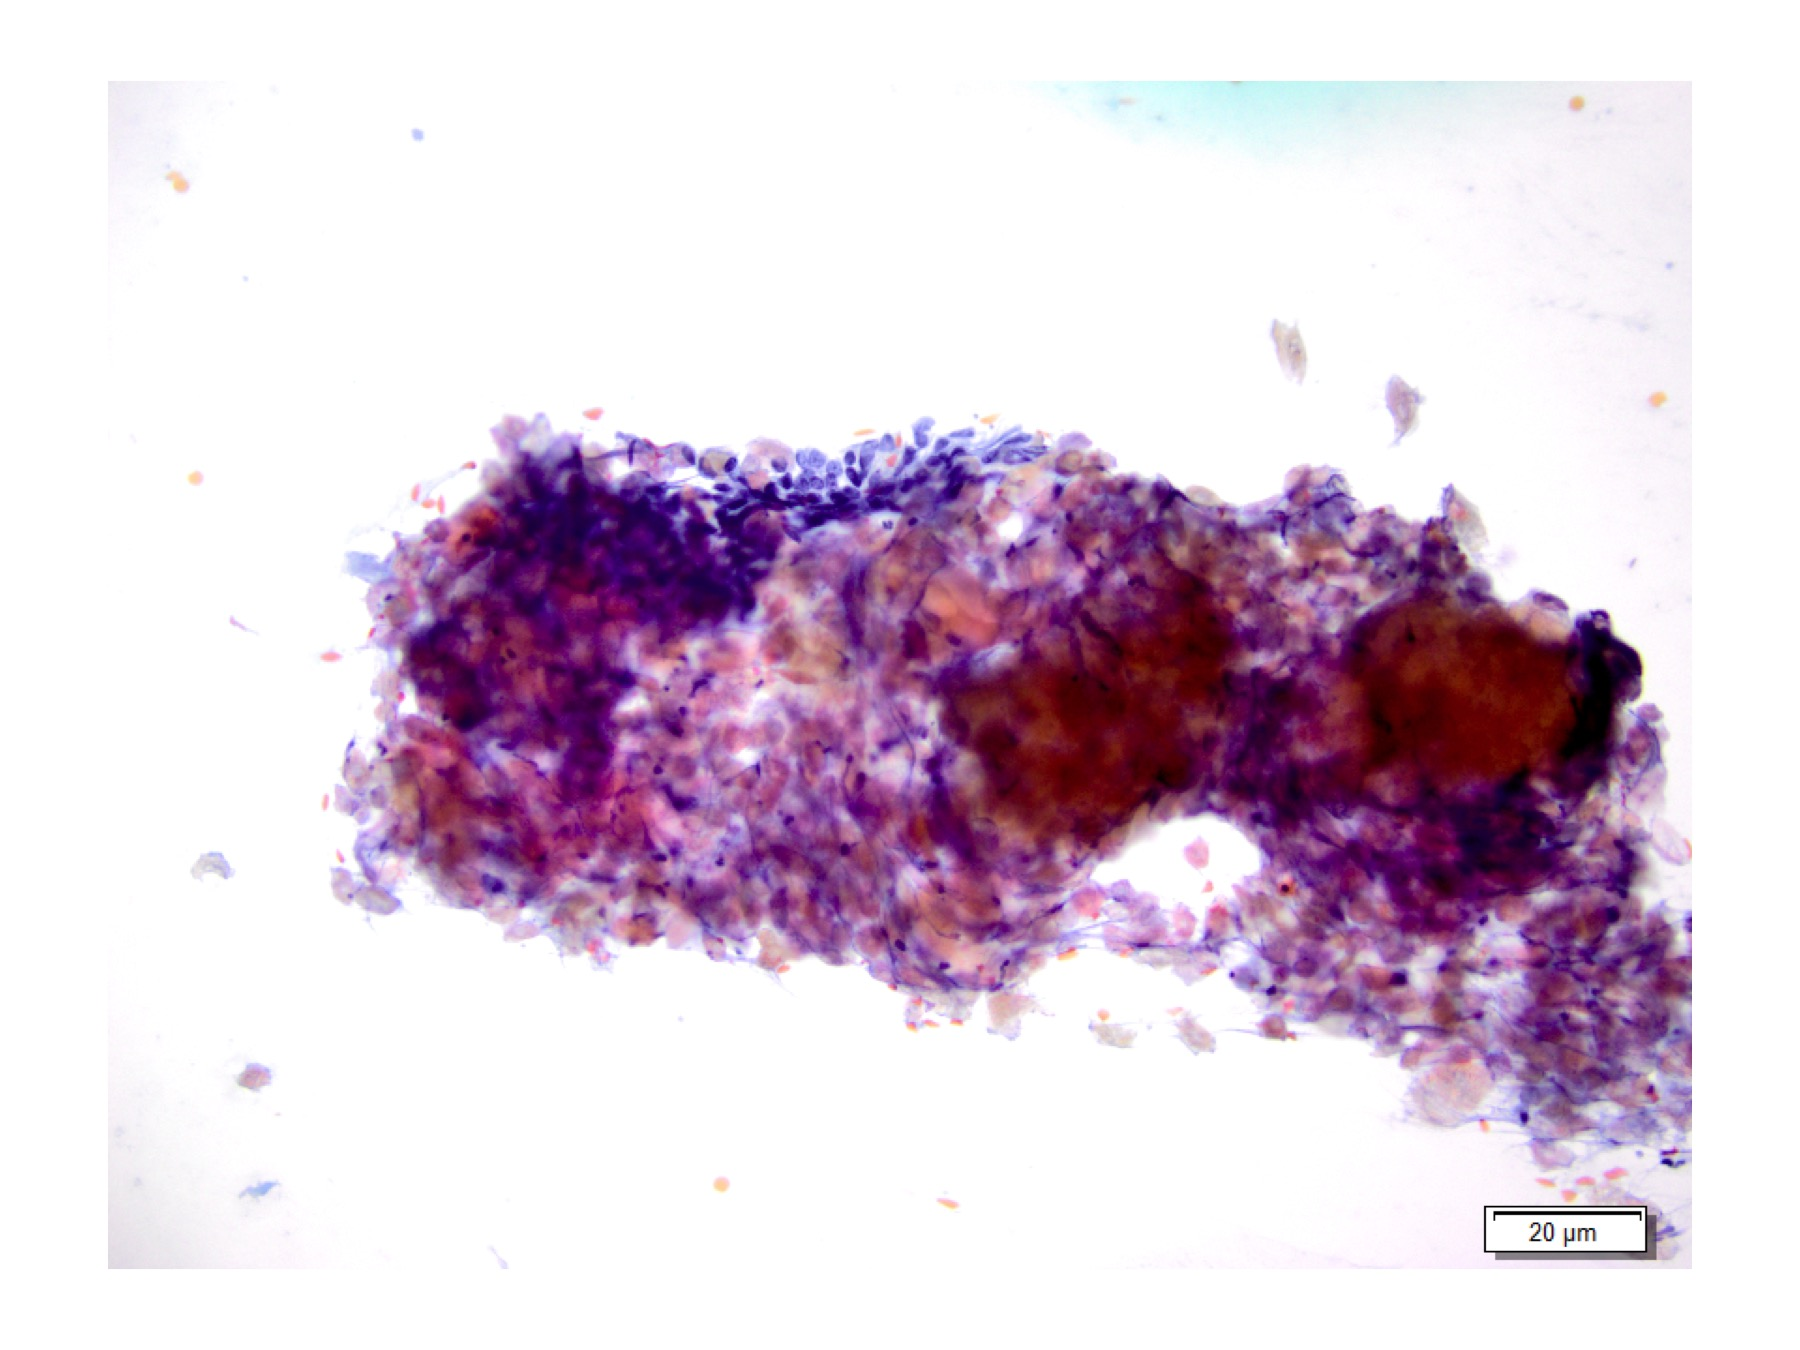 Figure 4:  Anucleated squames, keratin debris, clusters of basaloid cells, Pap stain at 20x